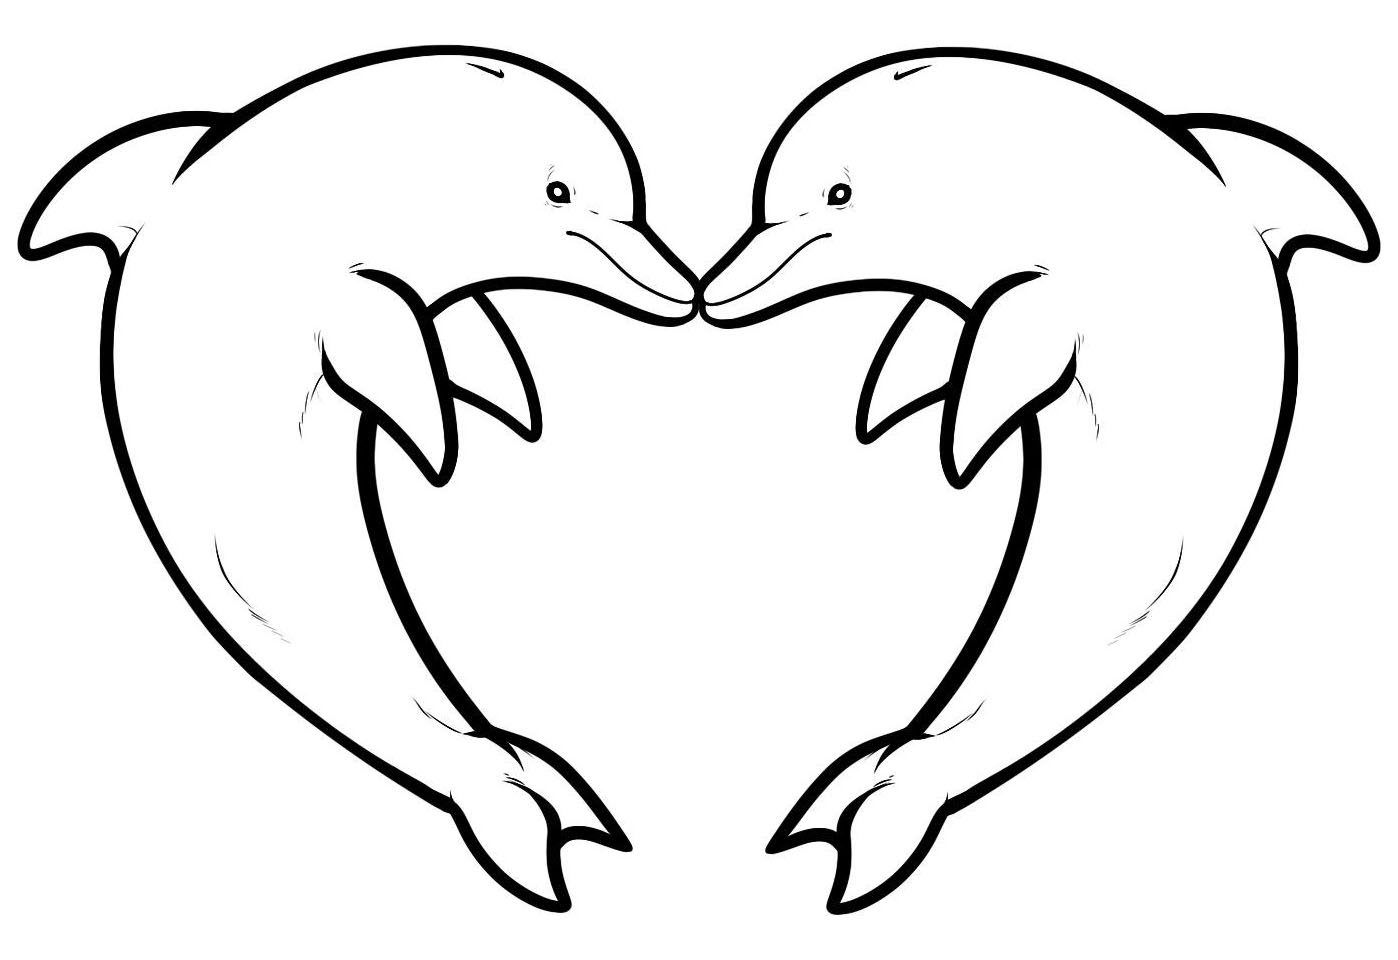 two dolphins forming a heart image with dolphin love heart from